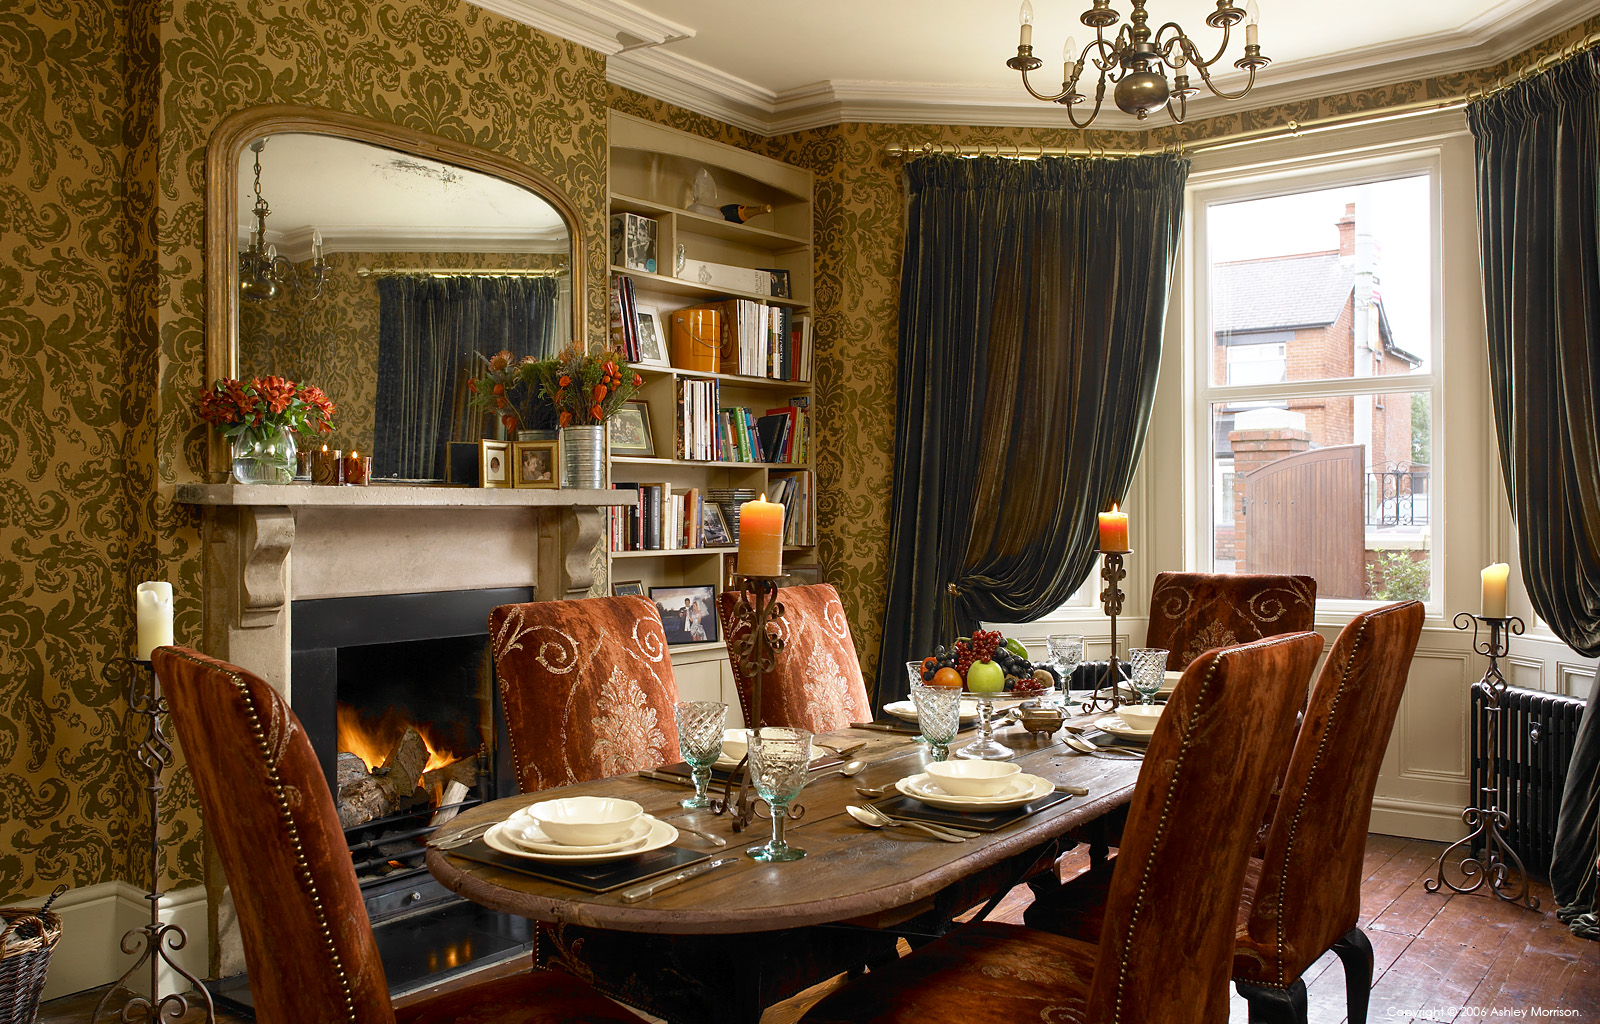 The dining room in diane and kieran rice 39 s edwardian detached house in belfast - Edwardian house interior ...